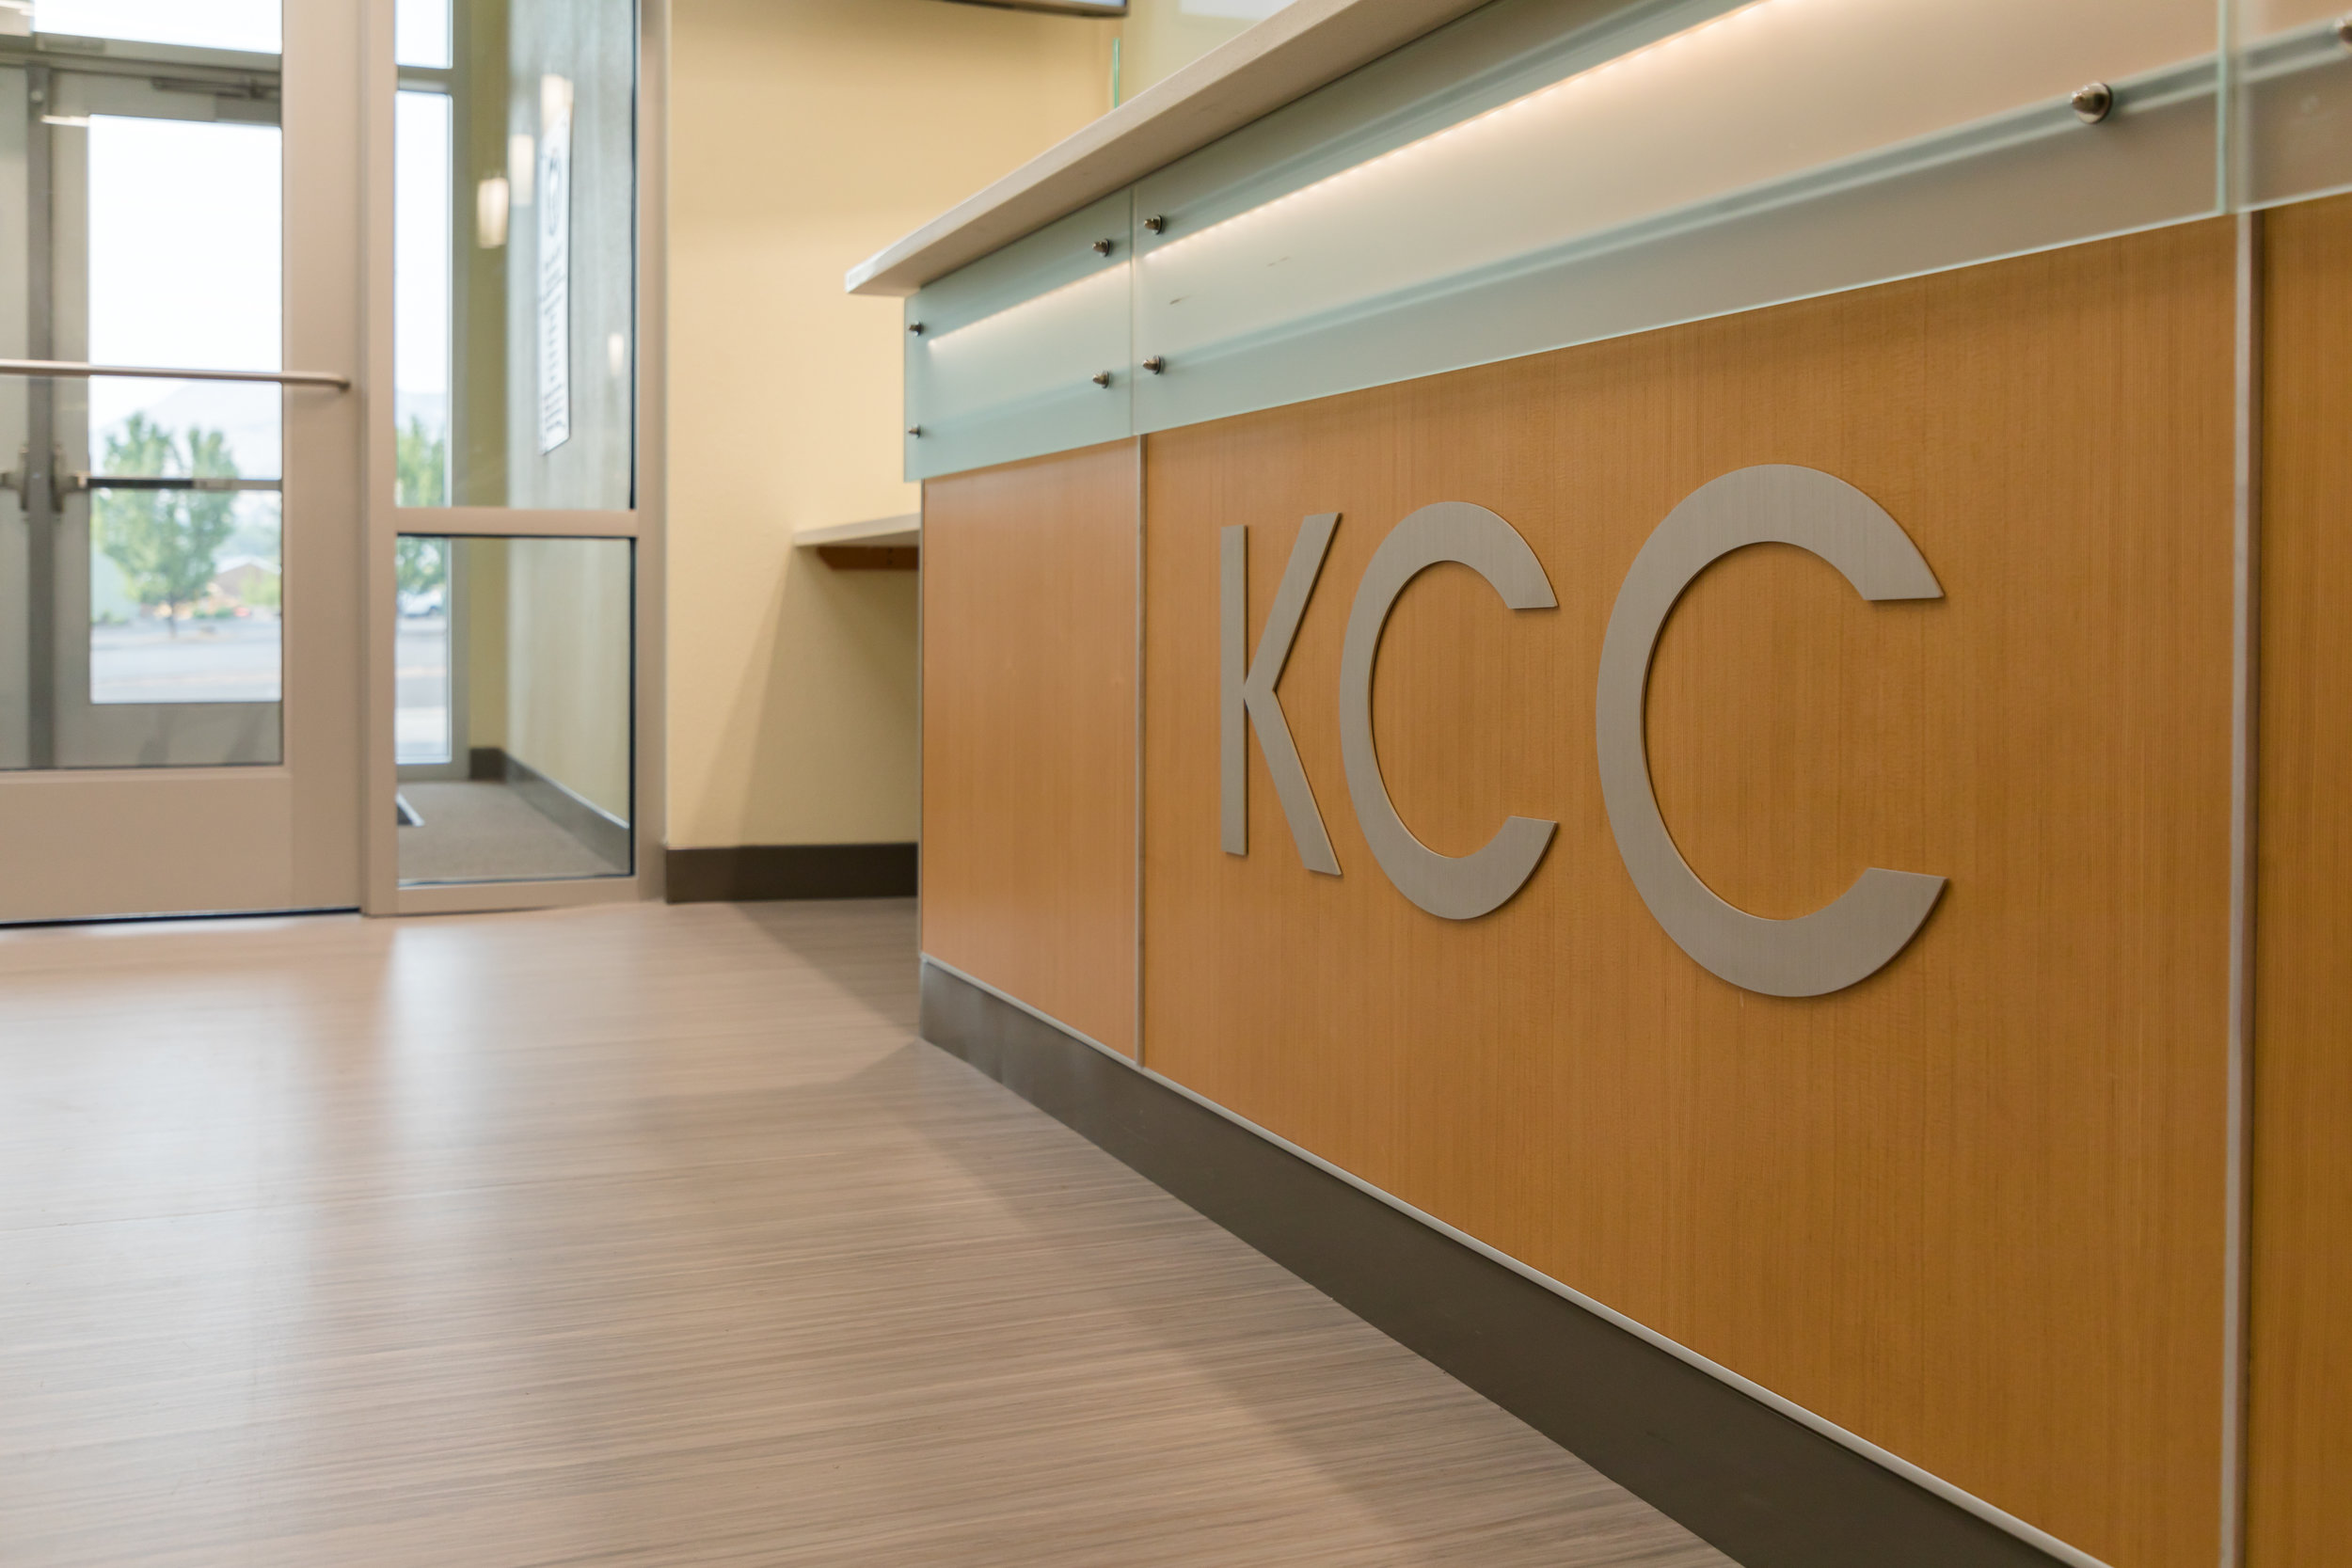 FoundersHall-Interiors-KCC-BCI-64.jpg